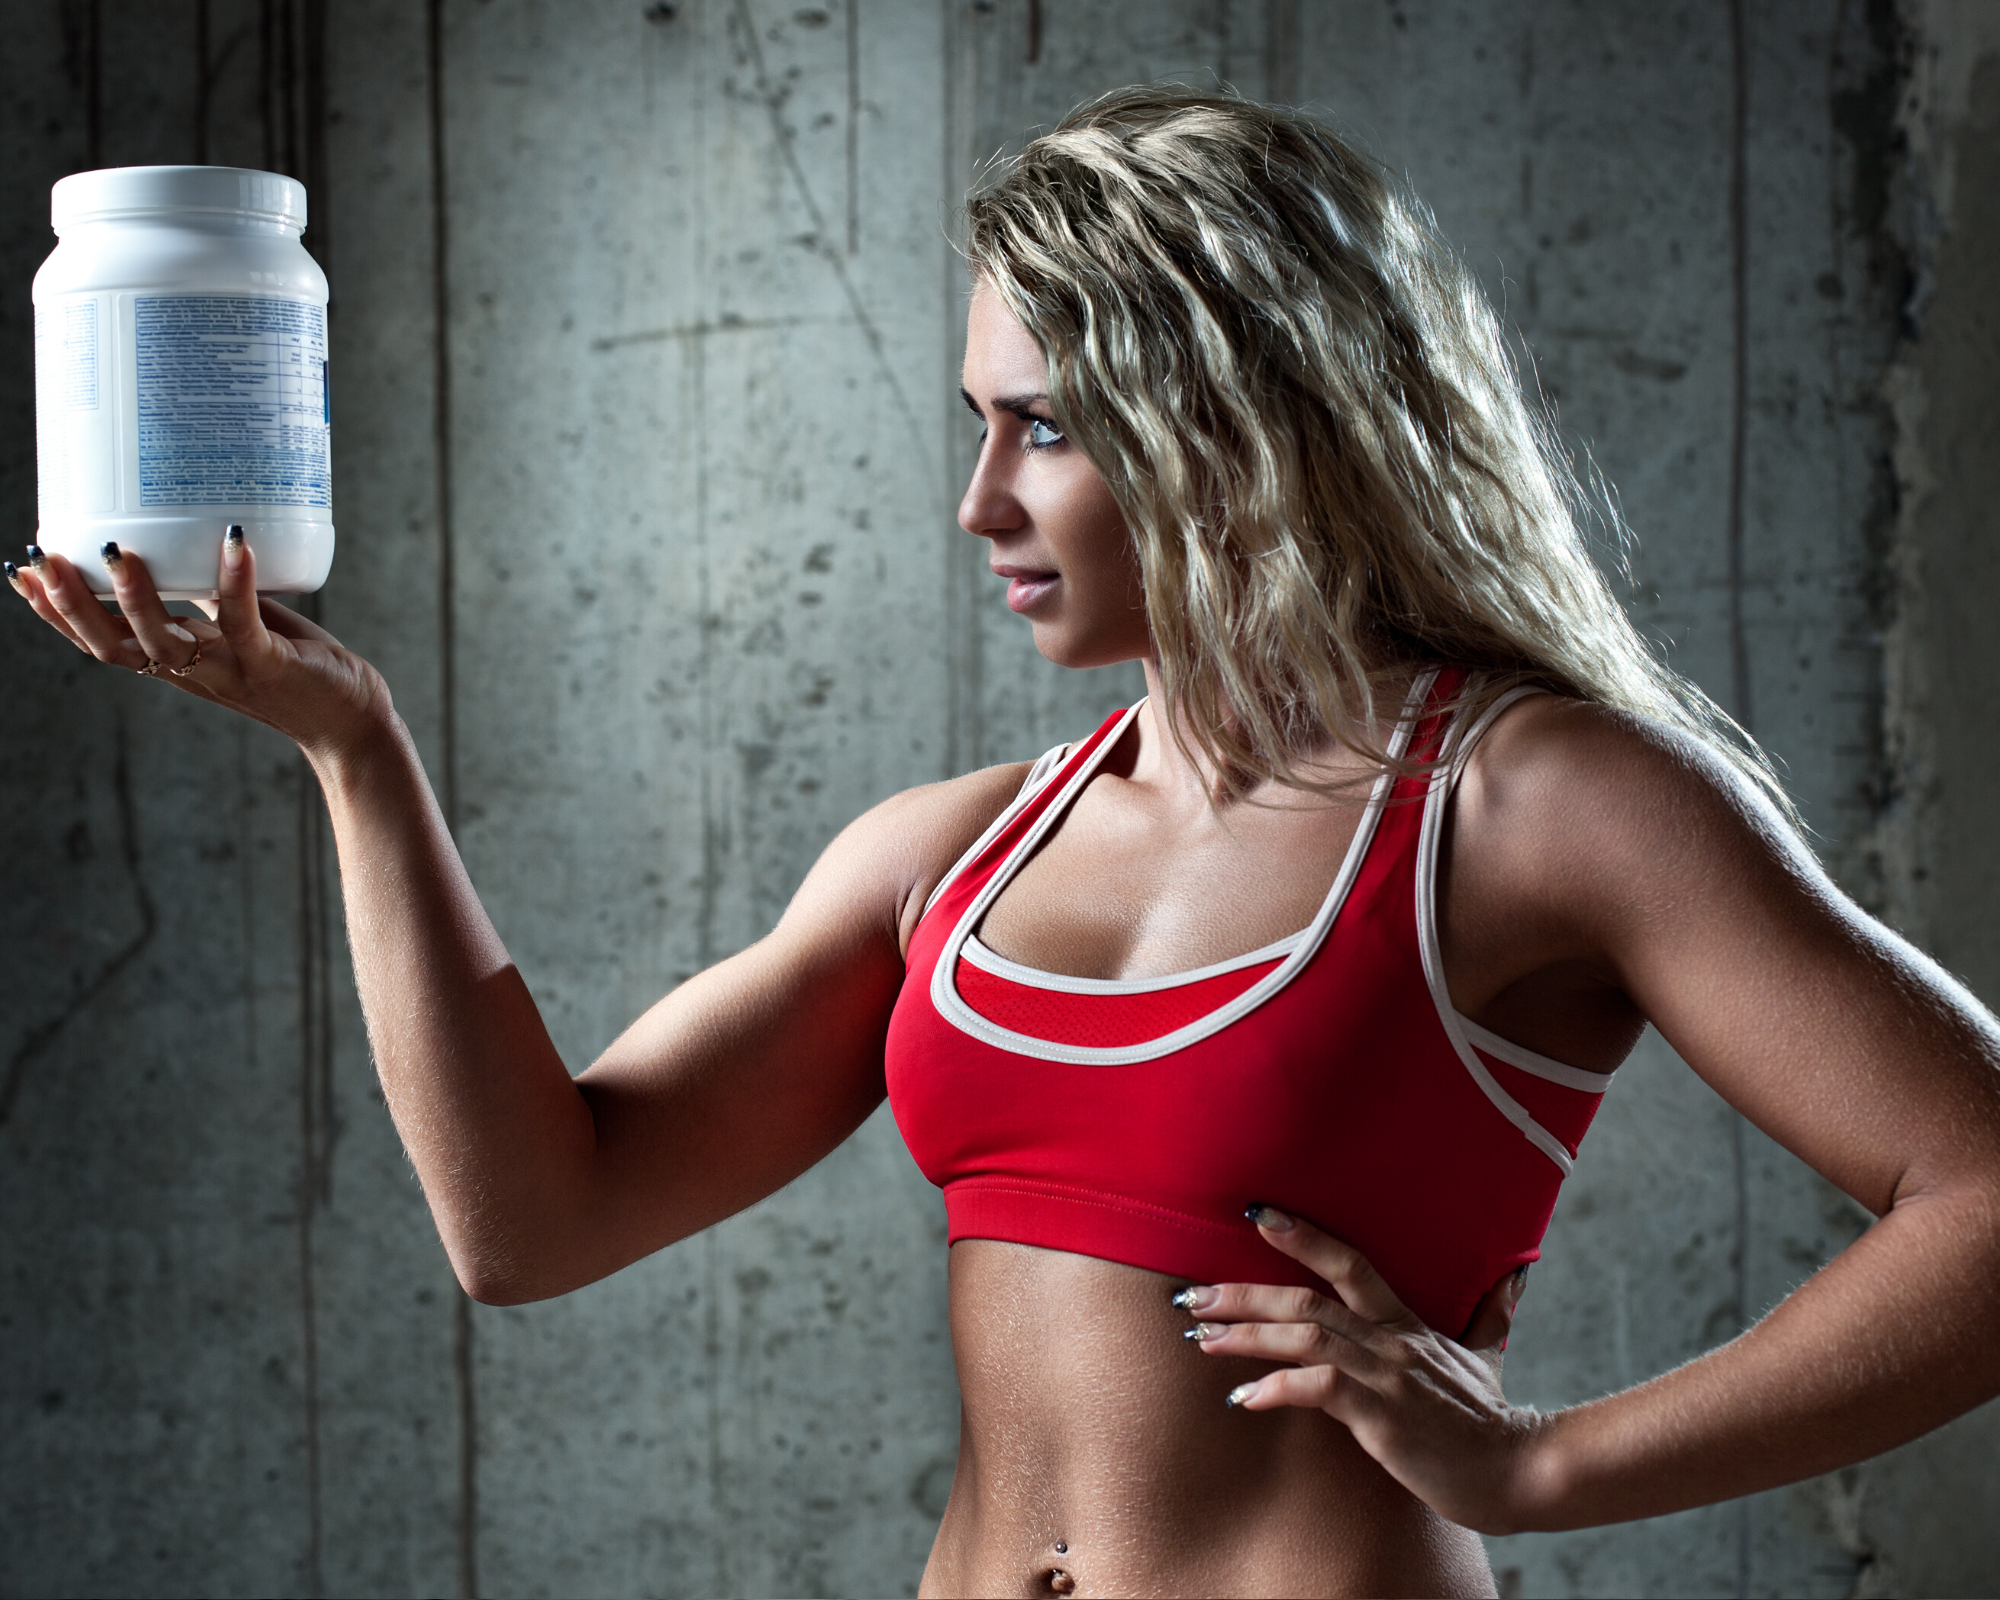 Women holding supplements with a sceptical gaze.